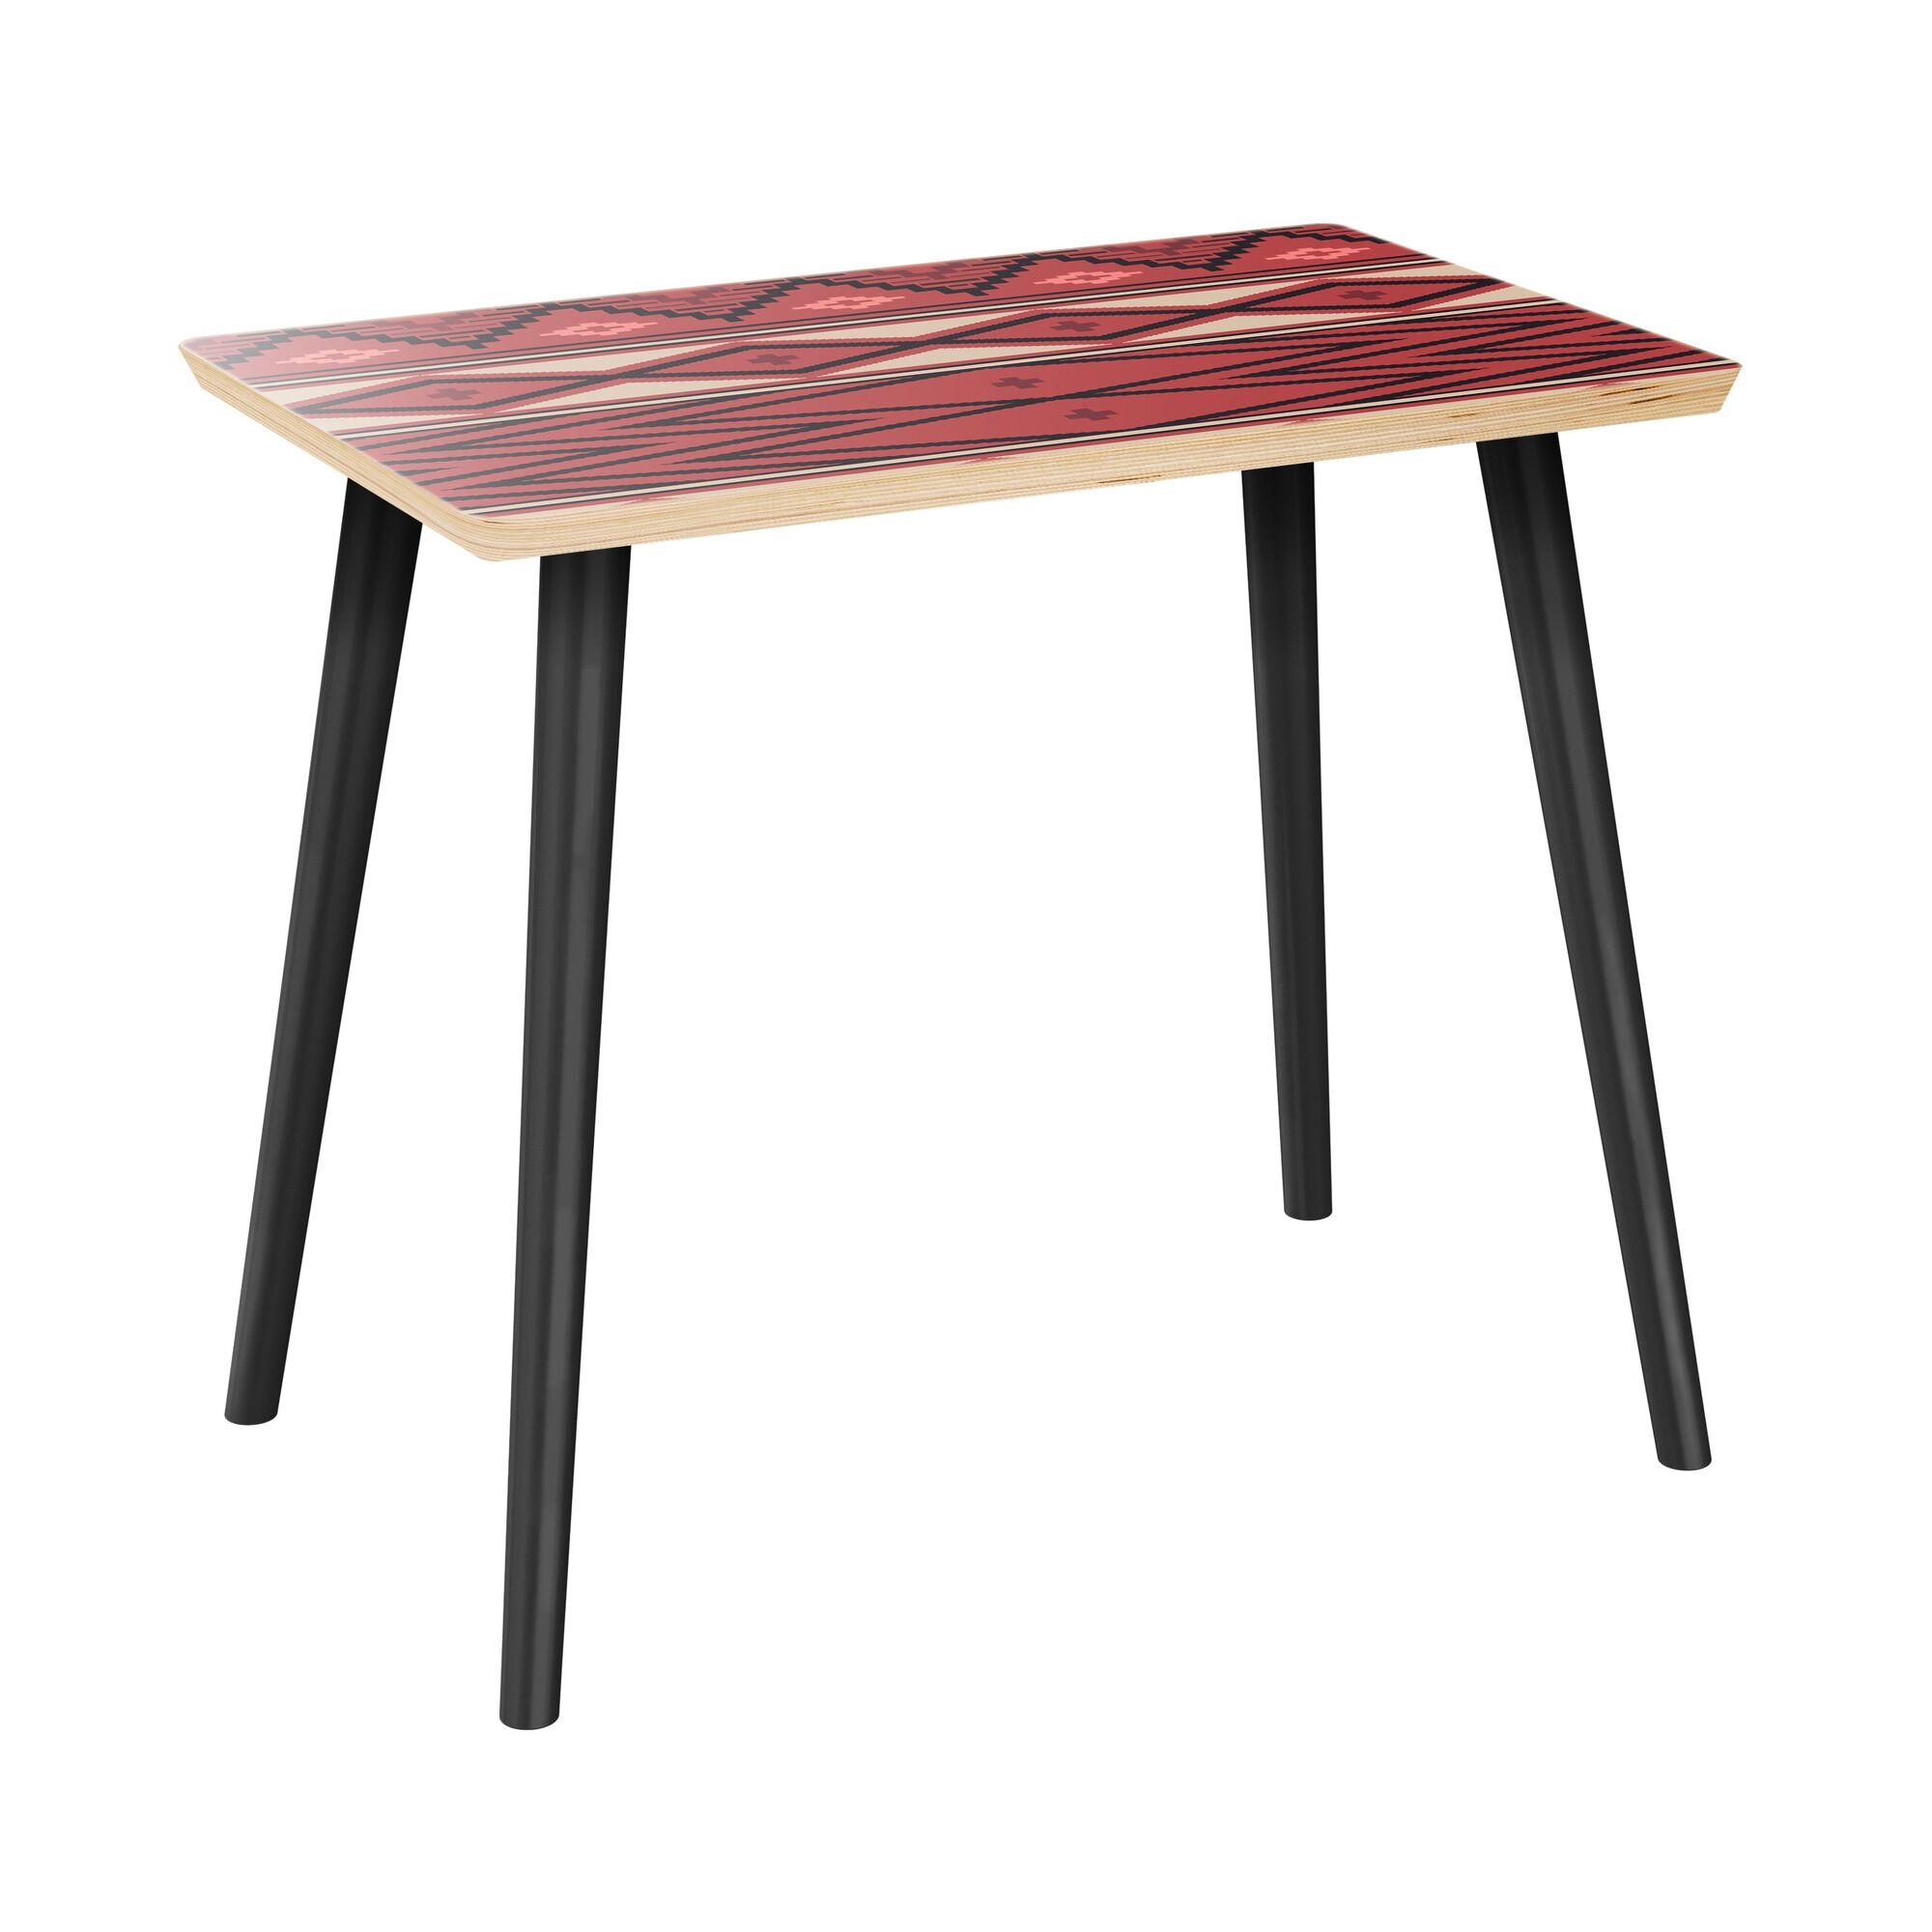 Hoyer End Table Table Top Boarder Color: Natural, Table Base Color: Black, Table Top Color: Pink/Blue